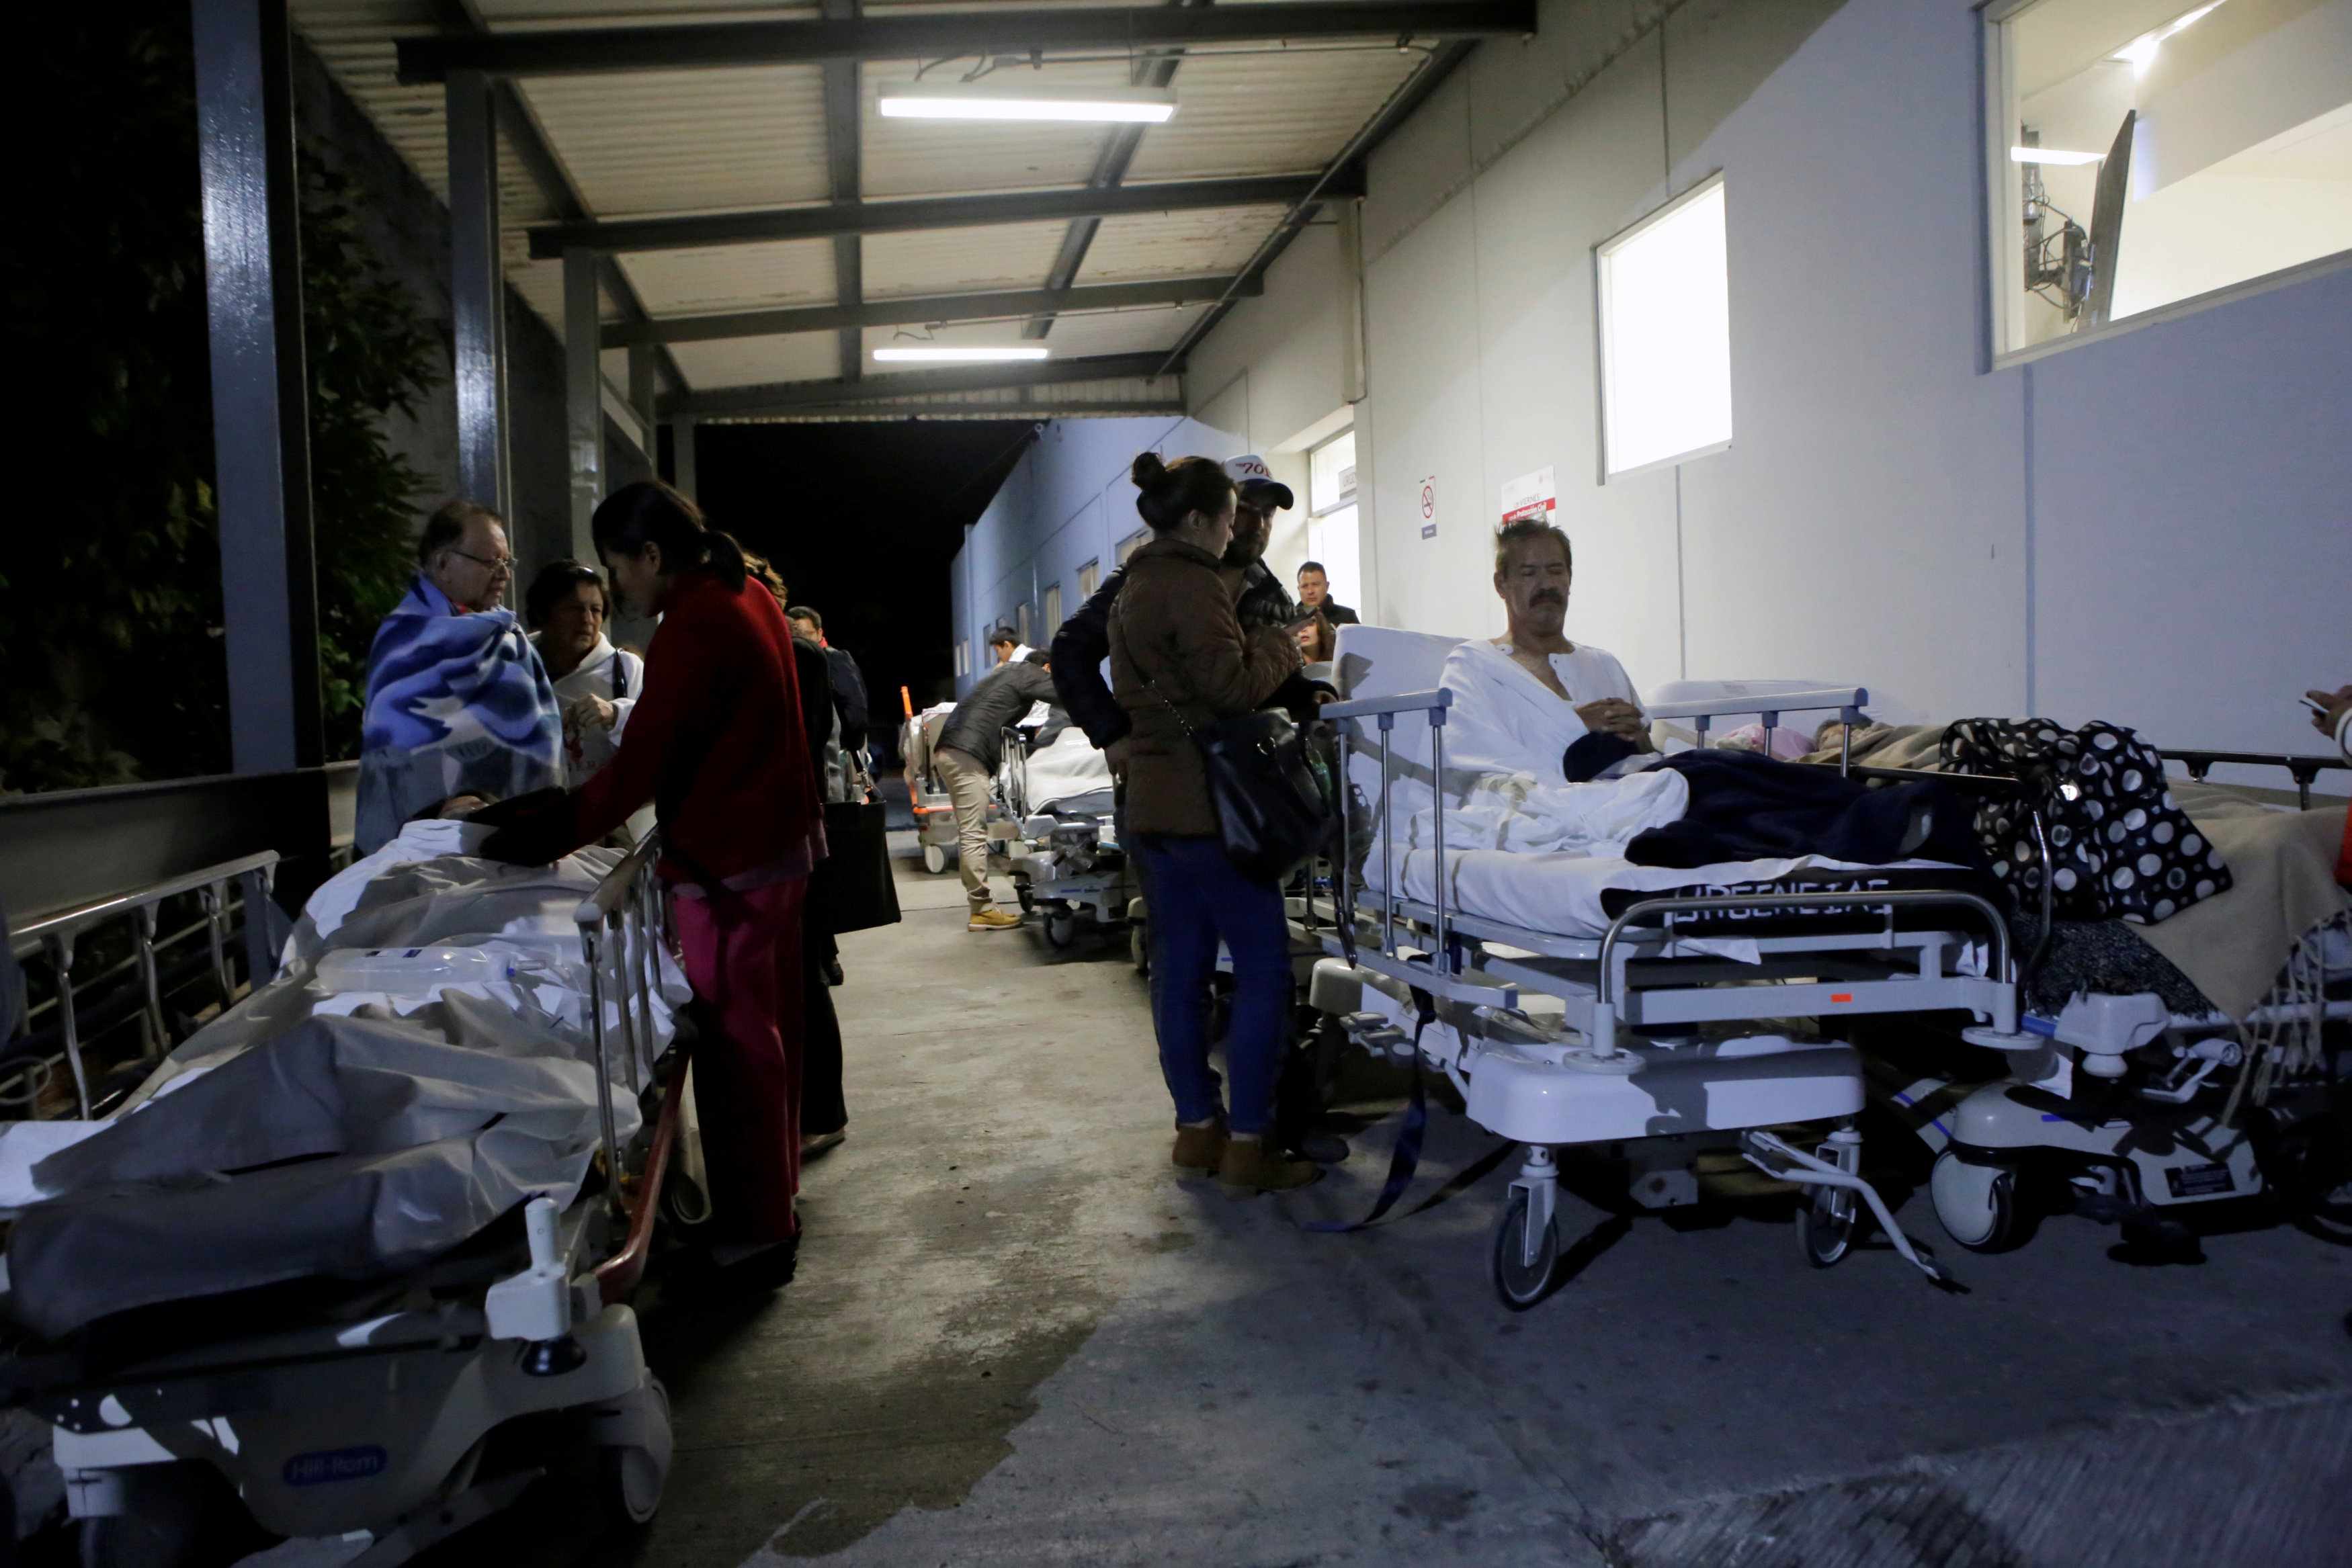 Patients and family members are seen outside the Institute for Social Security and Services for State Workers (ISSSTE) after an earthquake struck off the southern coast of Mexico late on Thursday, in Puebla, Mexico on Sept. 8, 2017. (REUTERS/Imelda Medina)